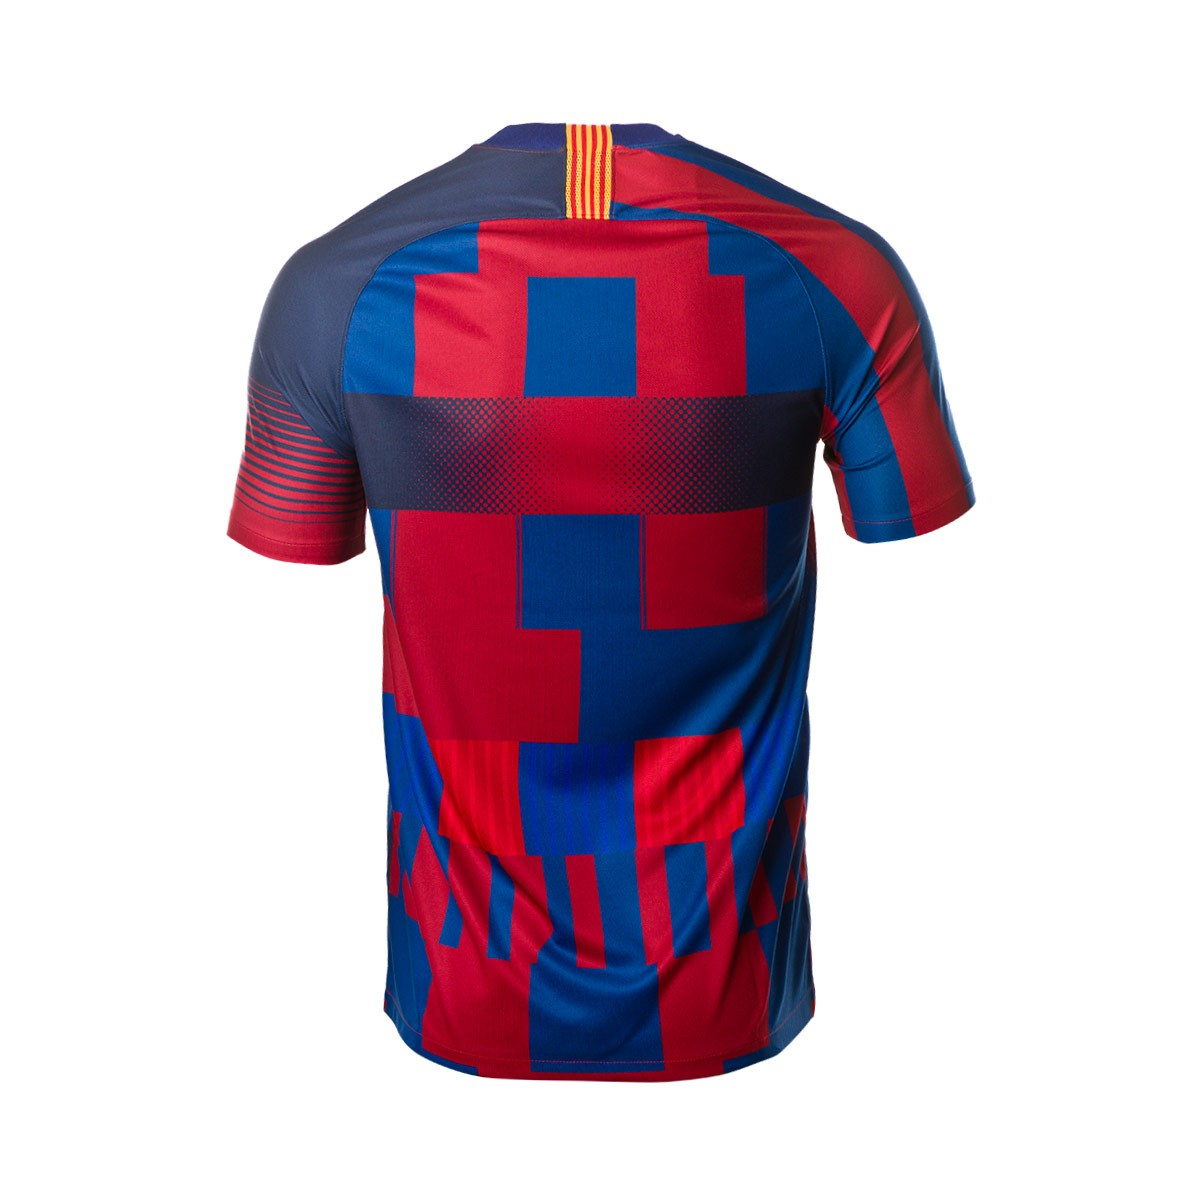 5e979d8a310 Jersey Nike FC Barcelona Stadium 20 years Deep royal blue-Noble red ...